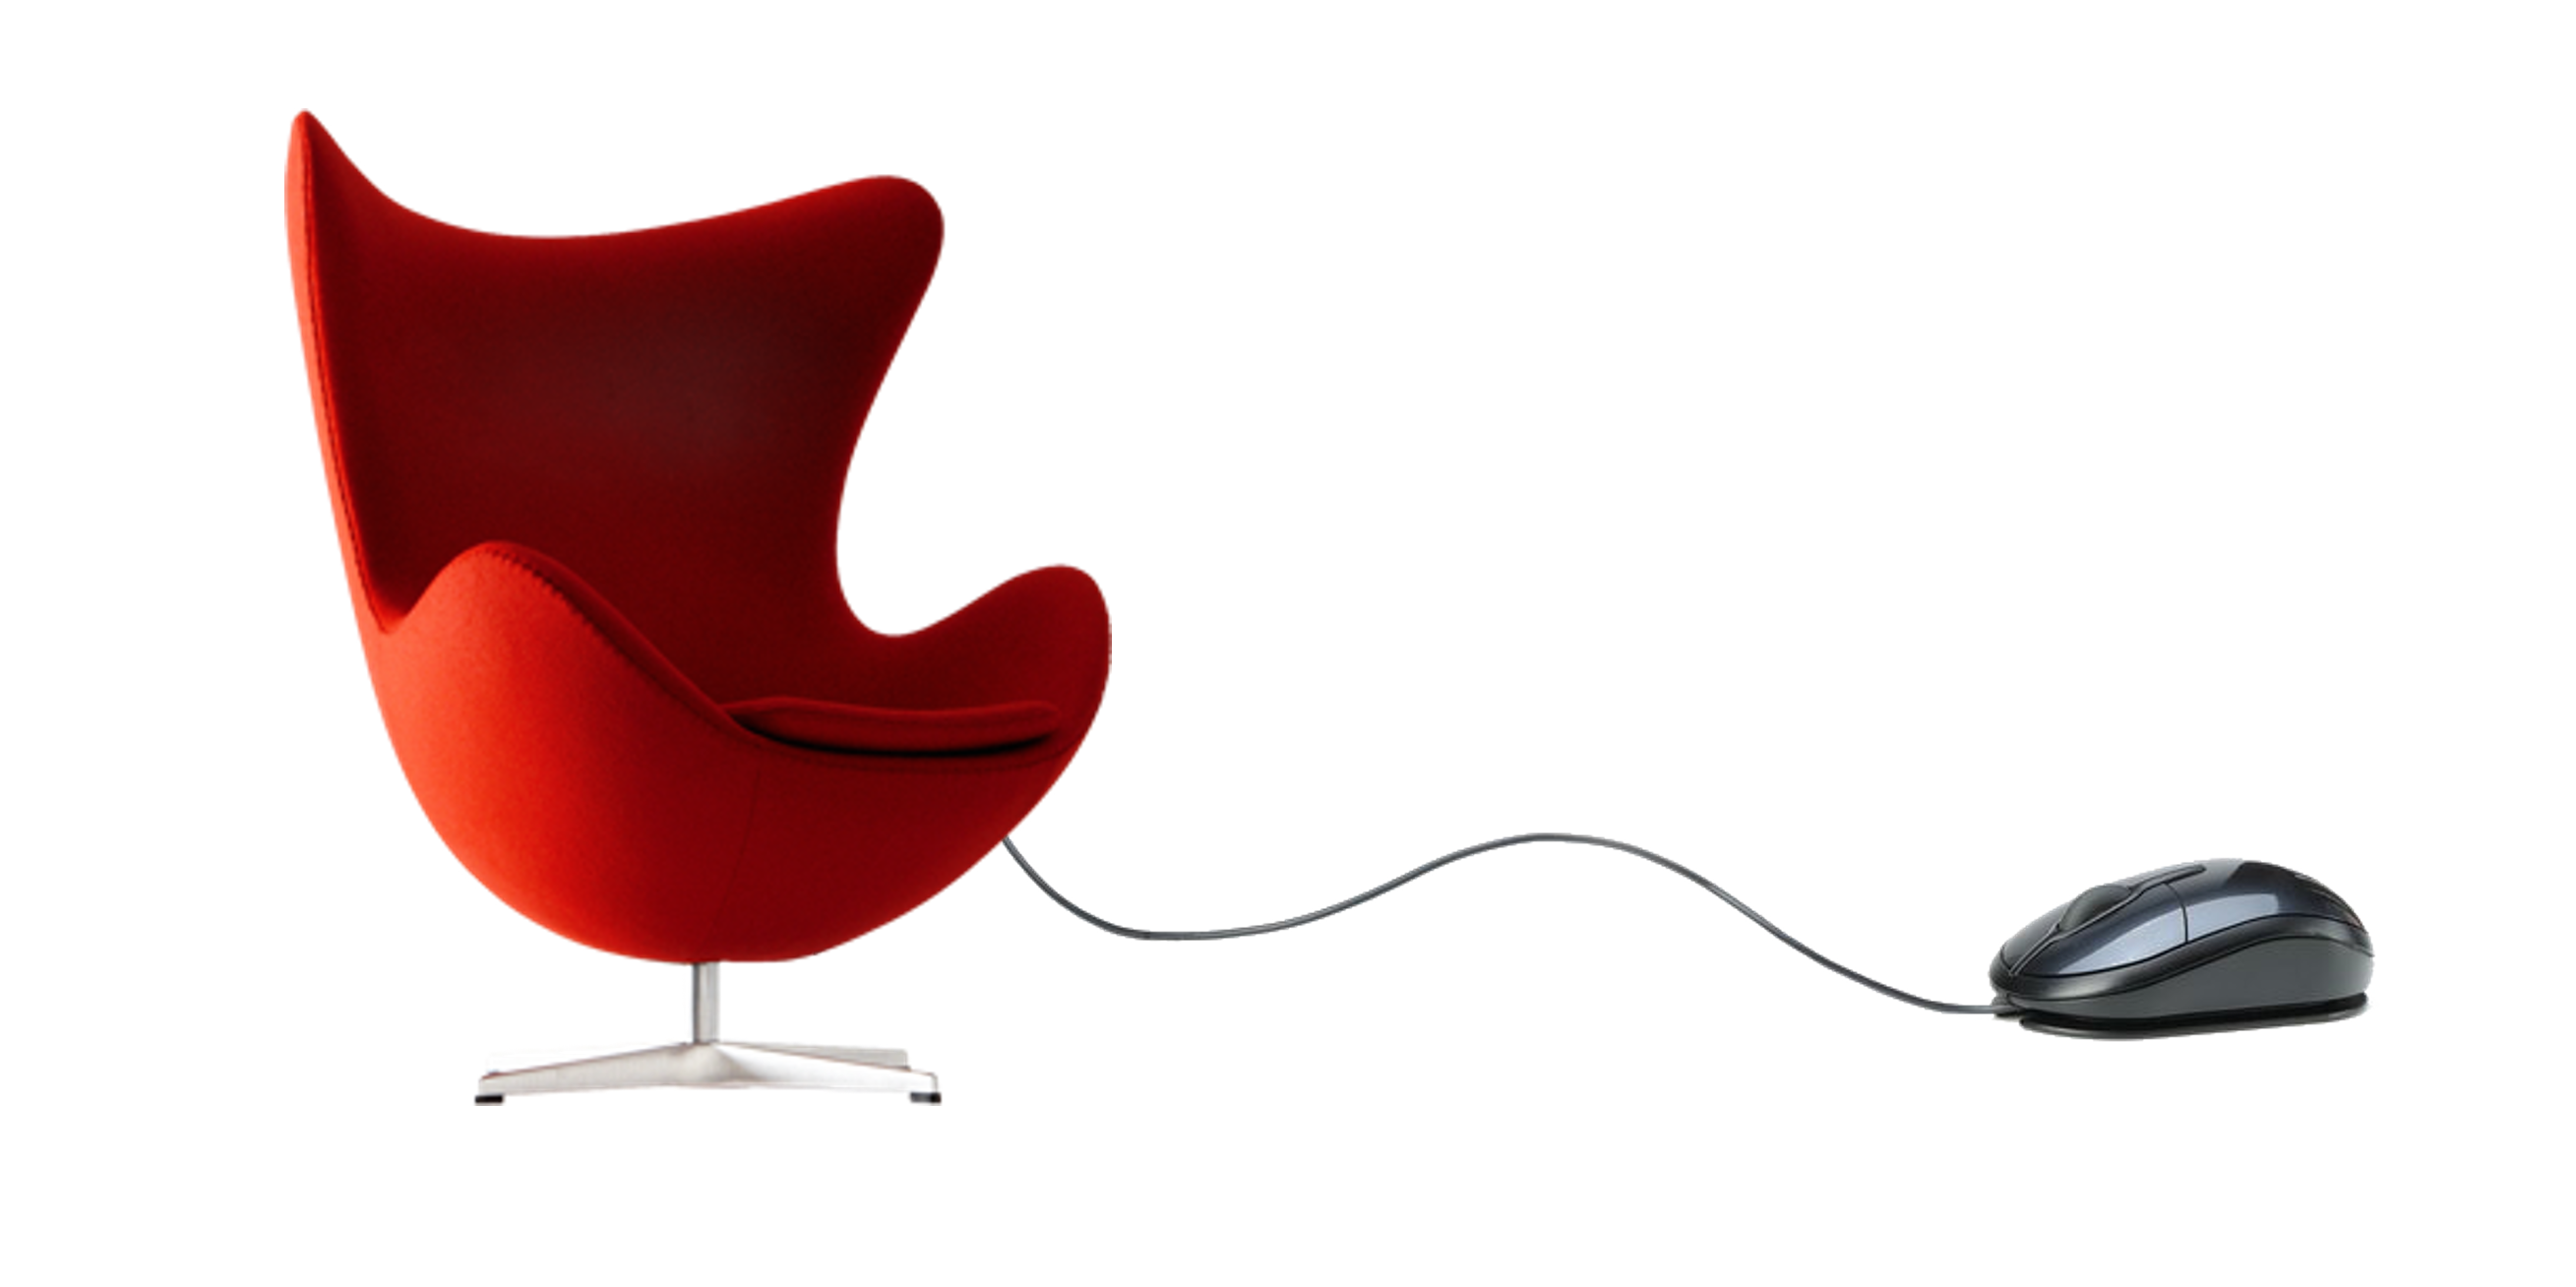 digital-transformation-with-chair-and-mouse